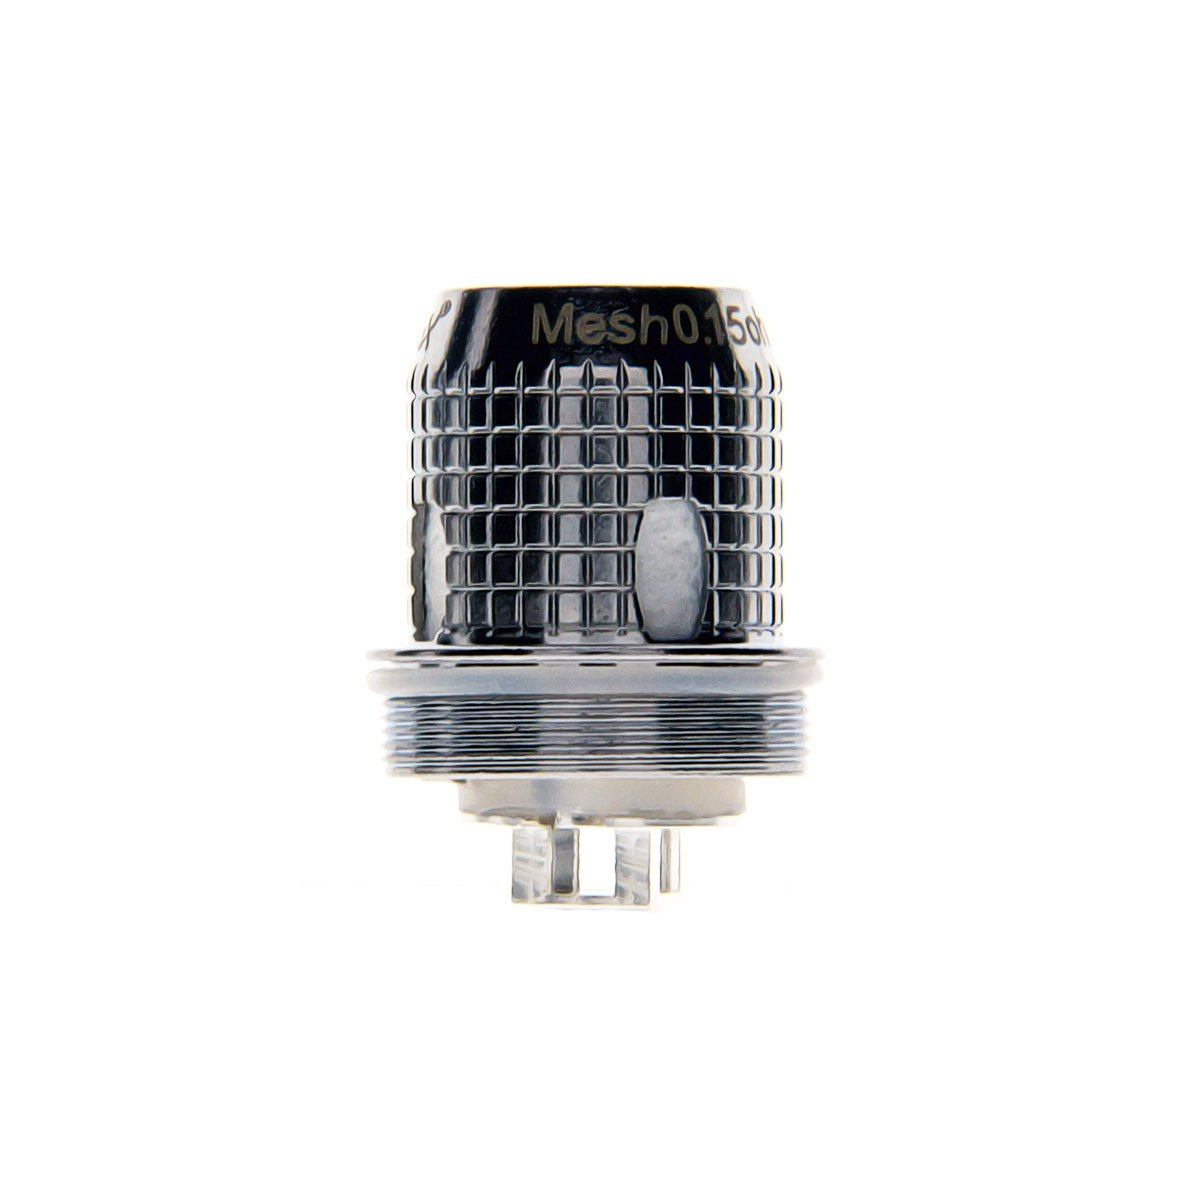 Freemax Fireluke 2 Mesh Replacement Coils